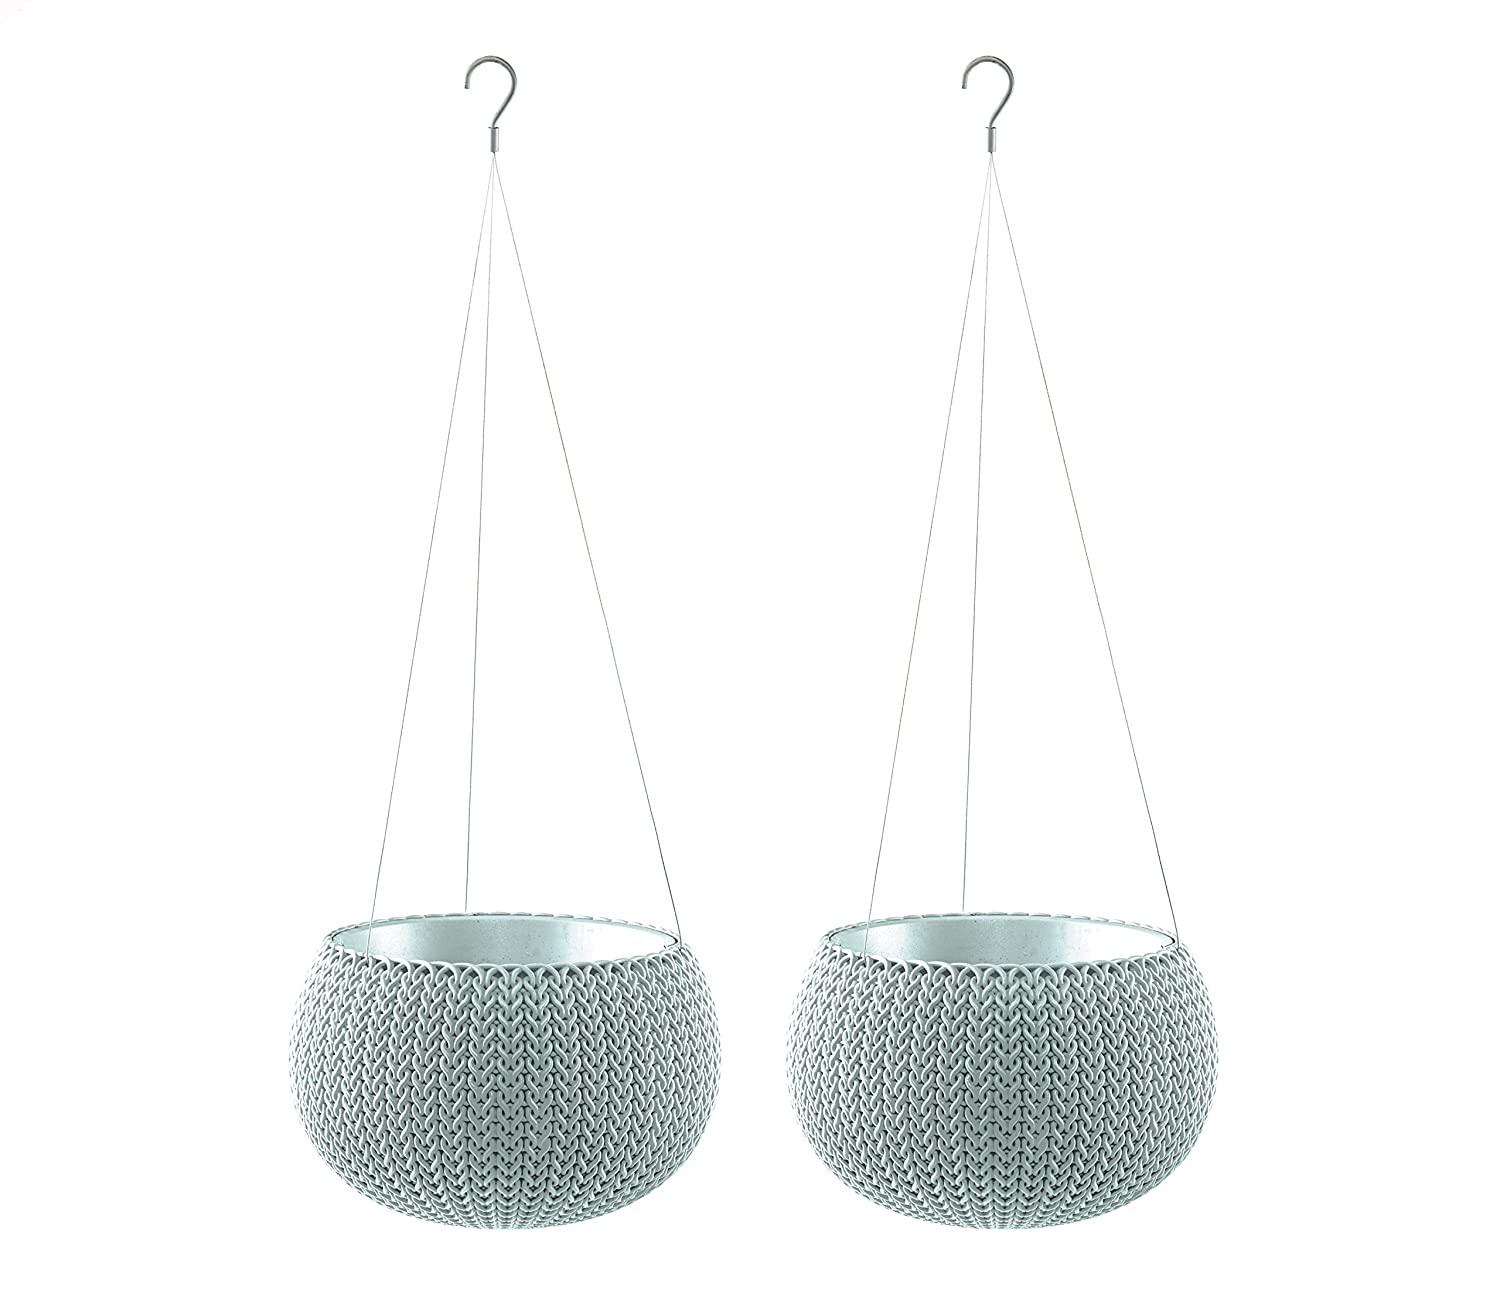 Keter Knit Cozies Hanging Baskets Plant Pot Planters, Small - Misty Blue, Pack of 2 17202963h